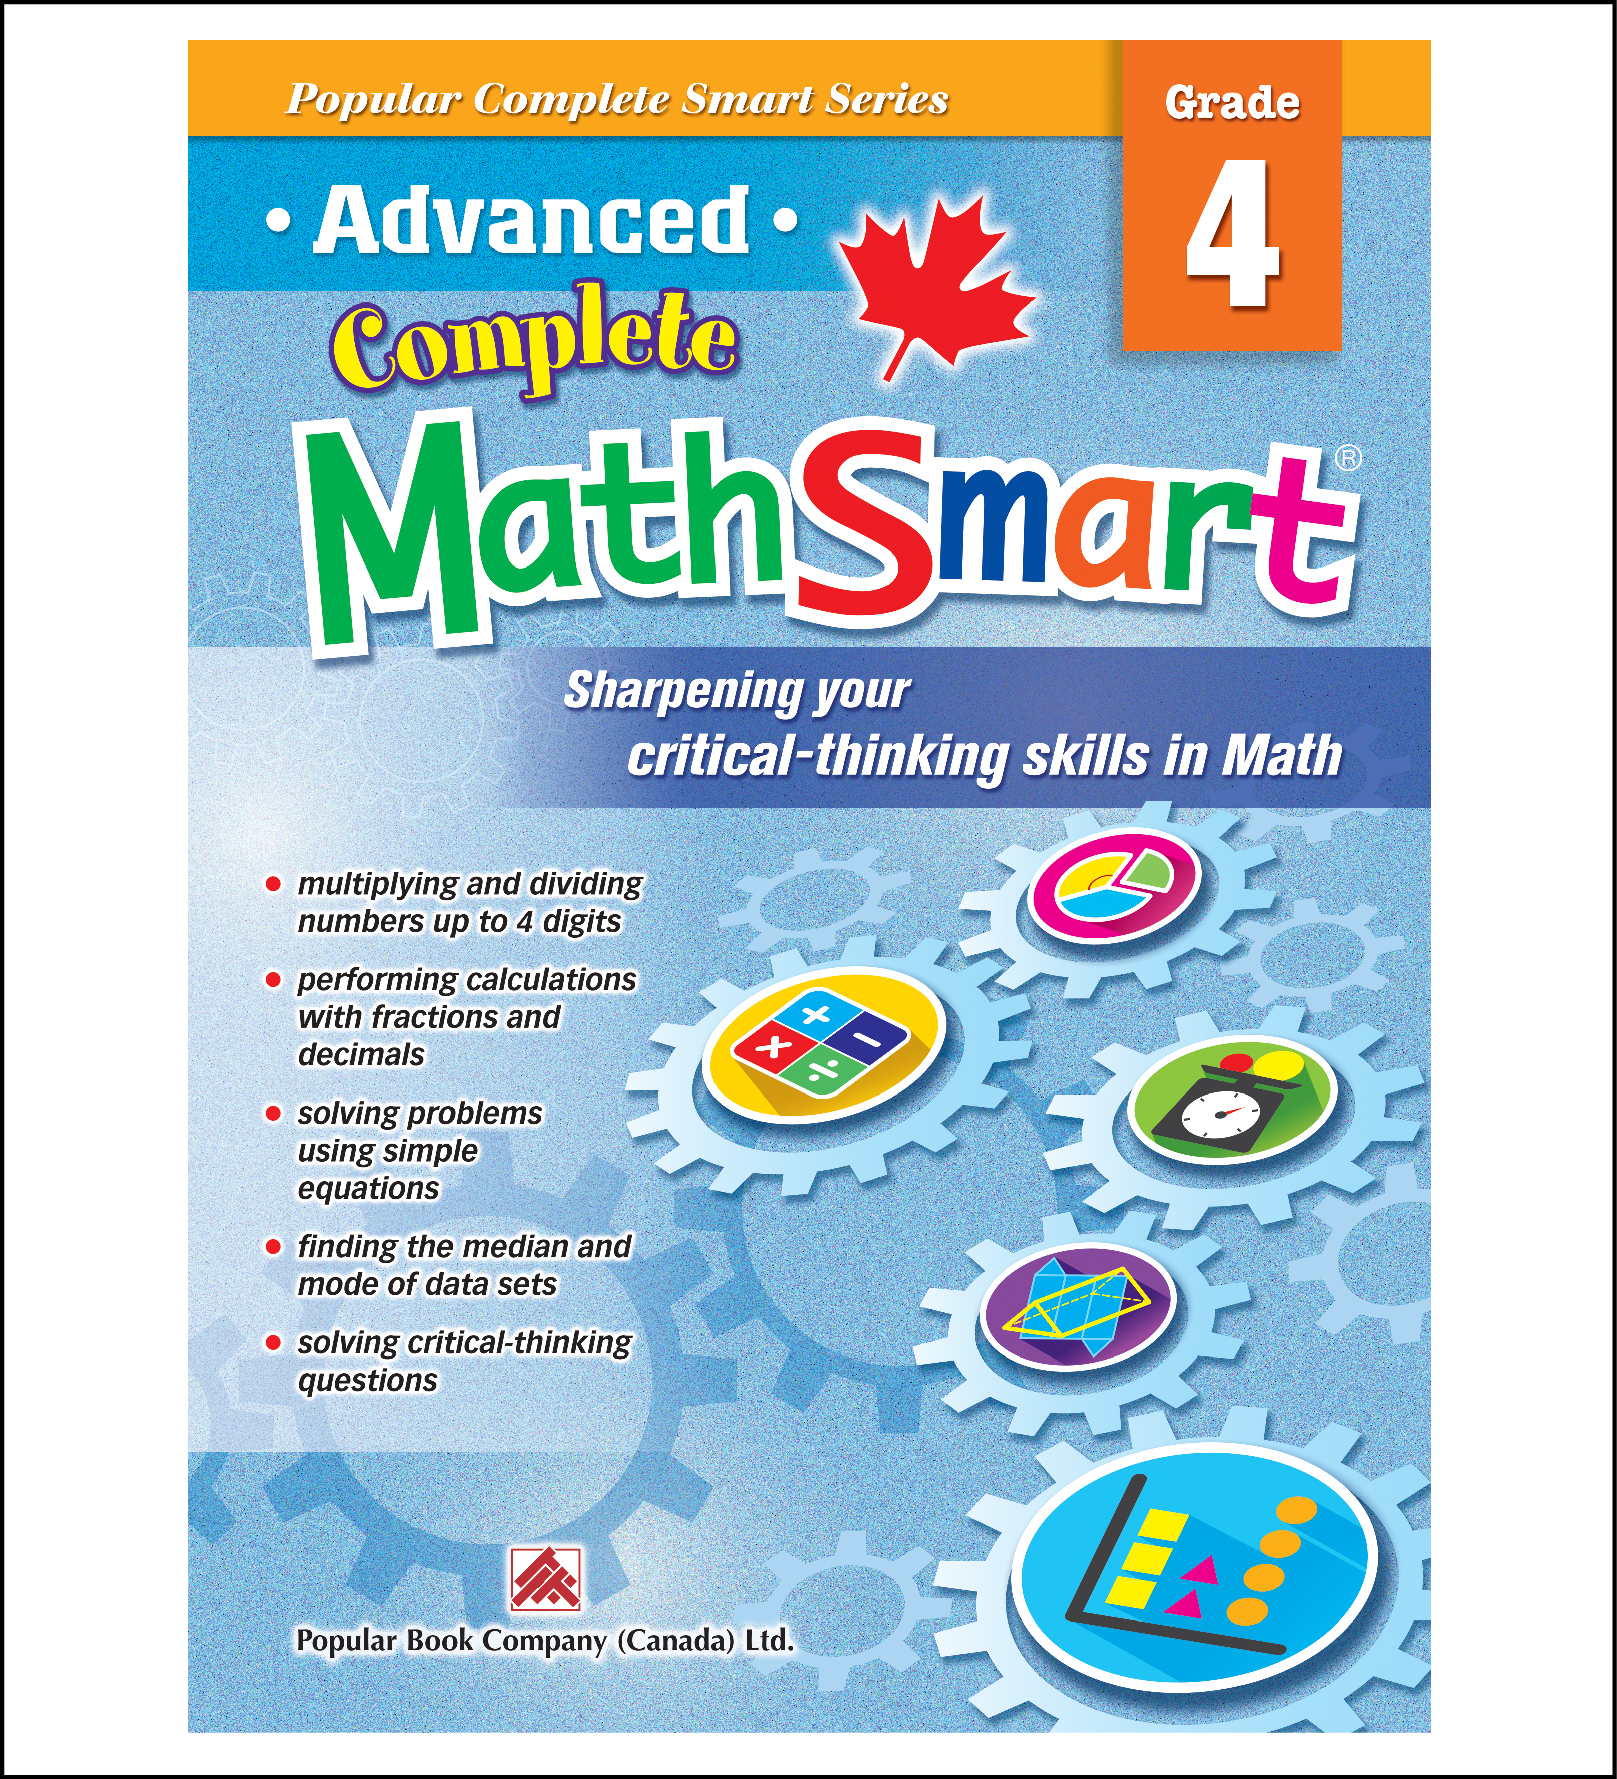 Advanced Complete MathSmart Grade 4 | Popular Book Company